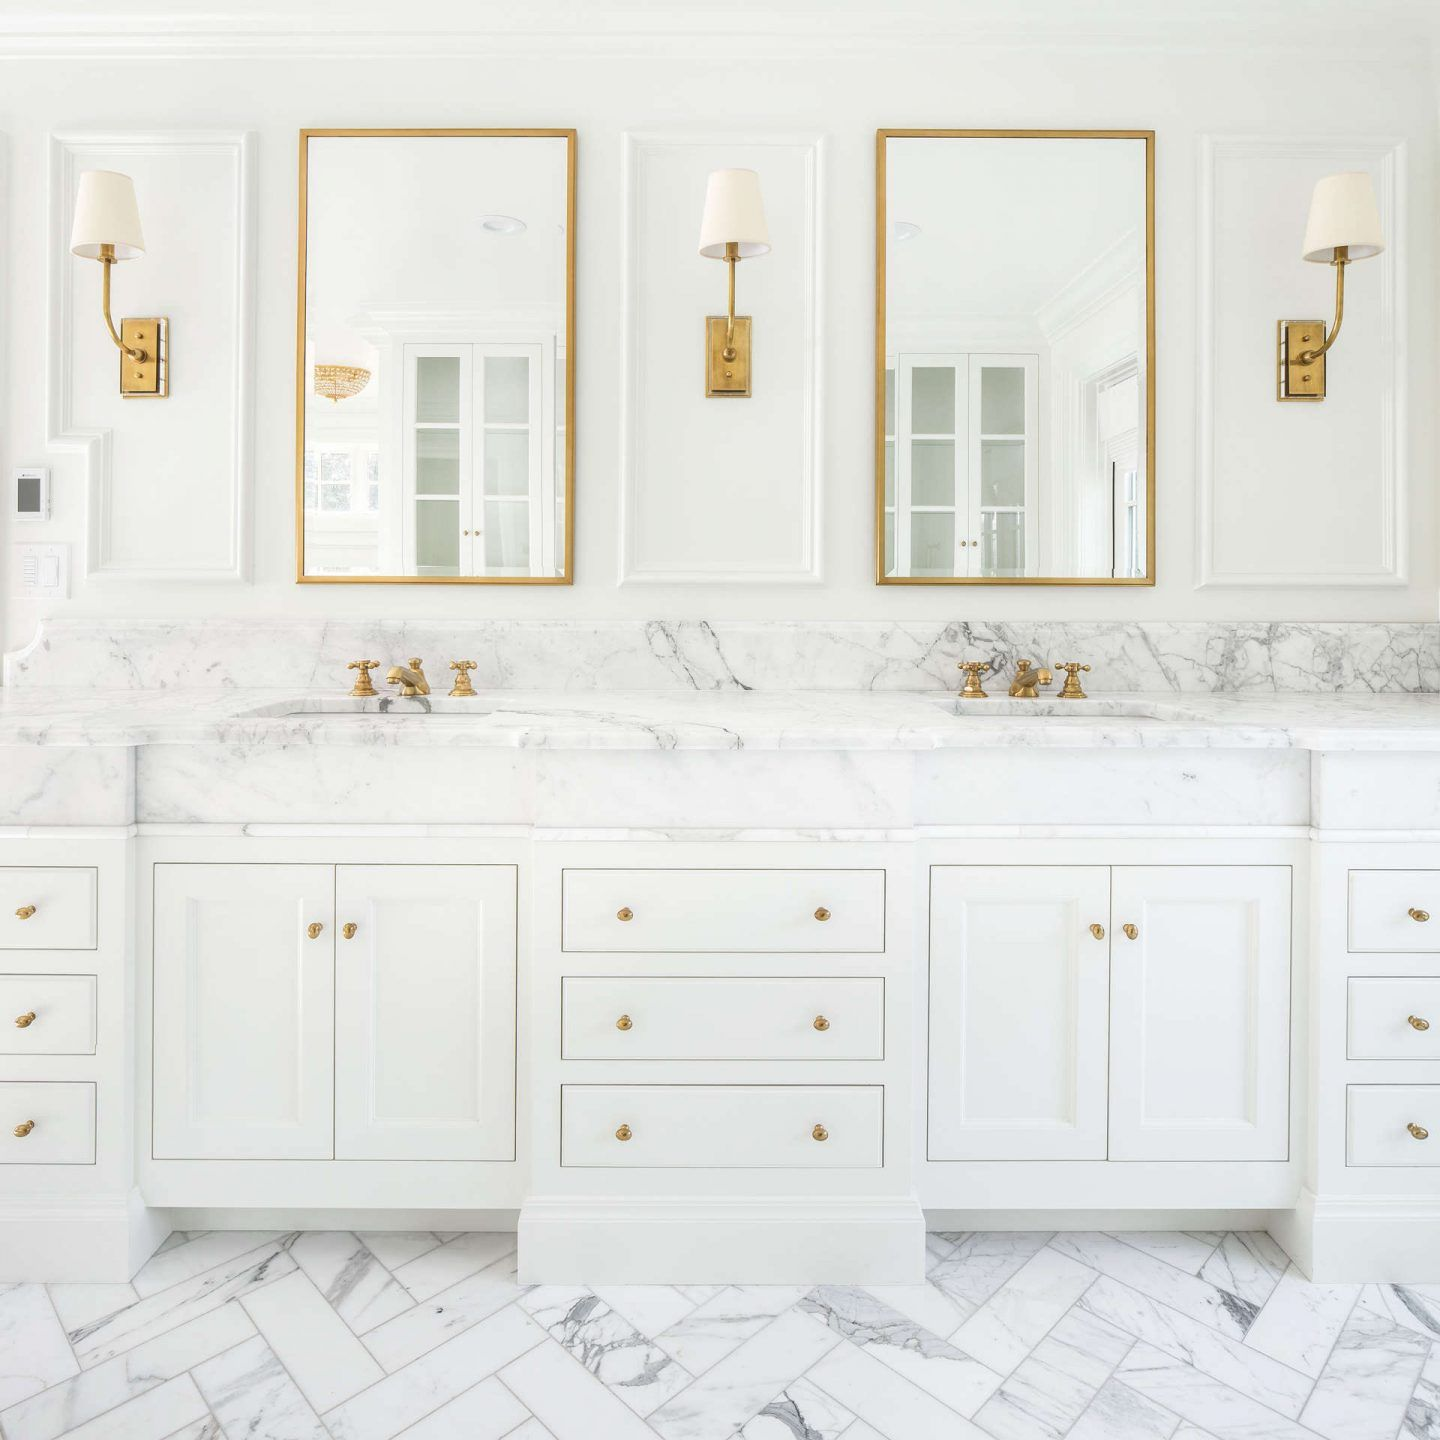 26+ White bathroom cabinets with gold handles inspiration